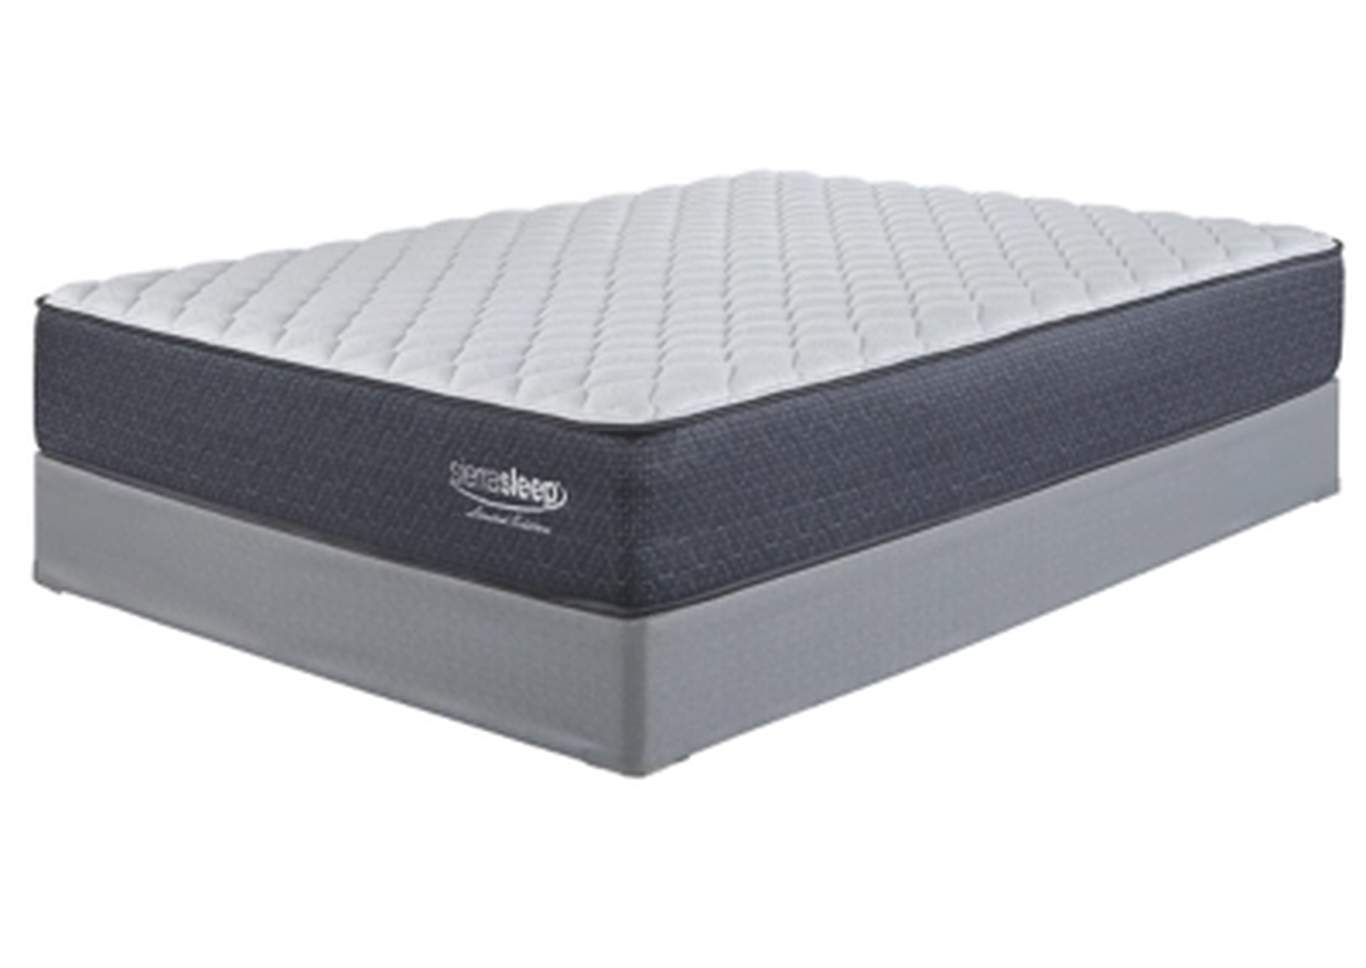 Limited Edition Firm White Full Mattress w/Foundation,Sierra Sleep by Ashley